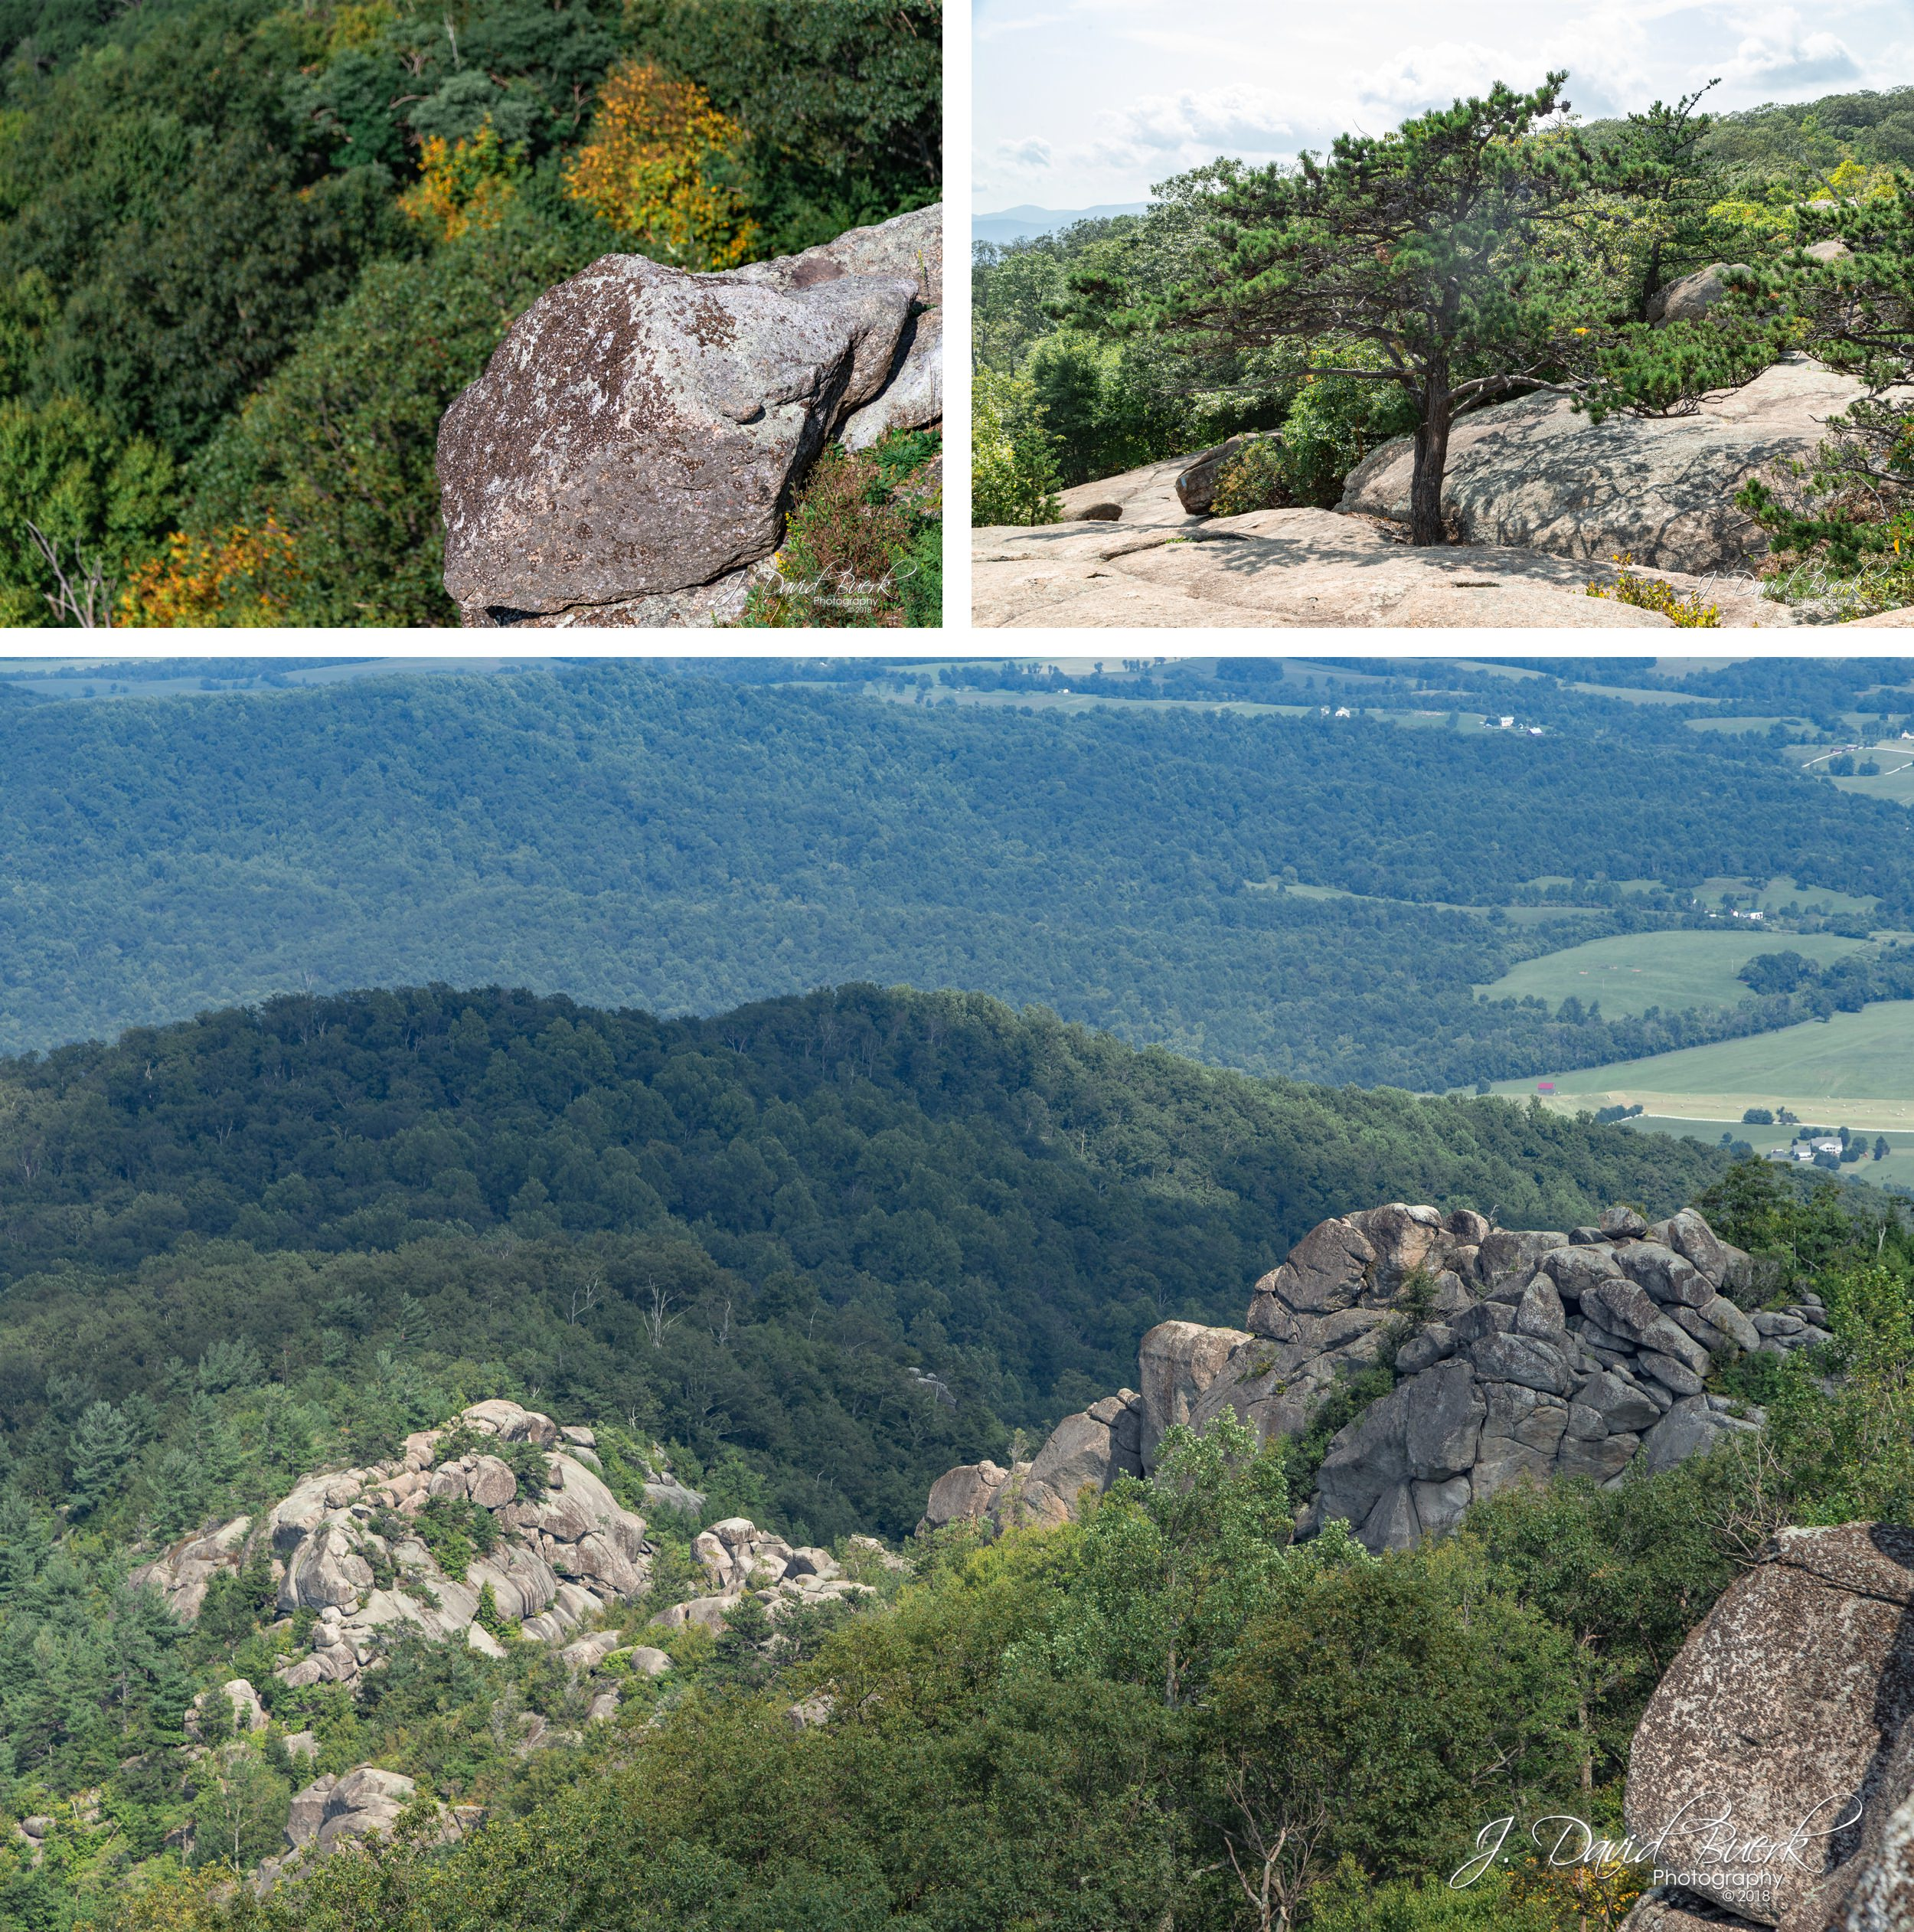 20180826 - Old Rag Mountain August 2018 7.jpg